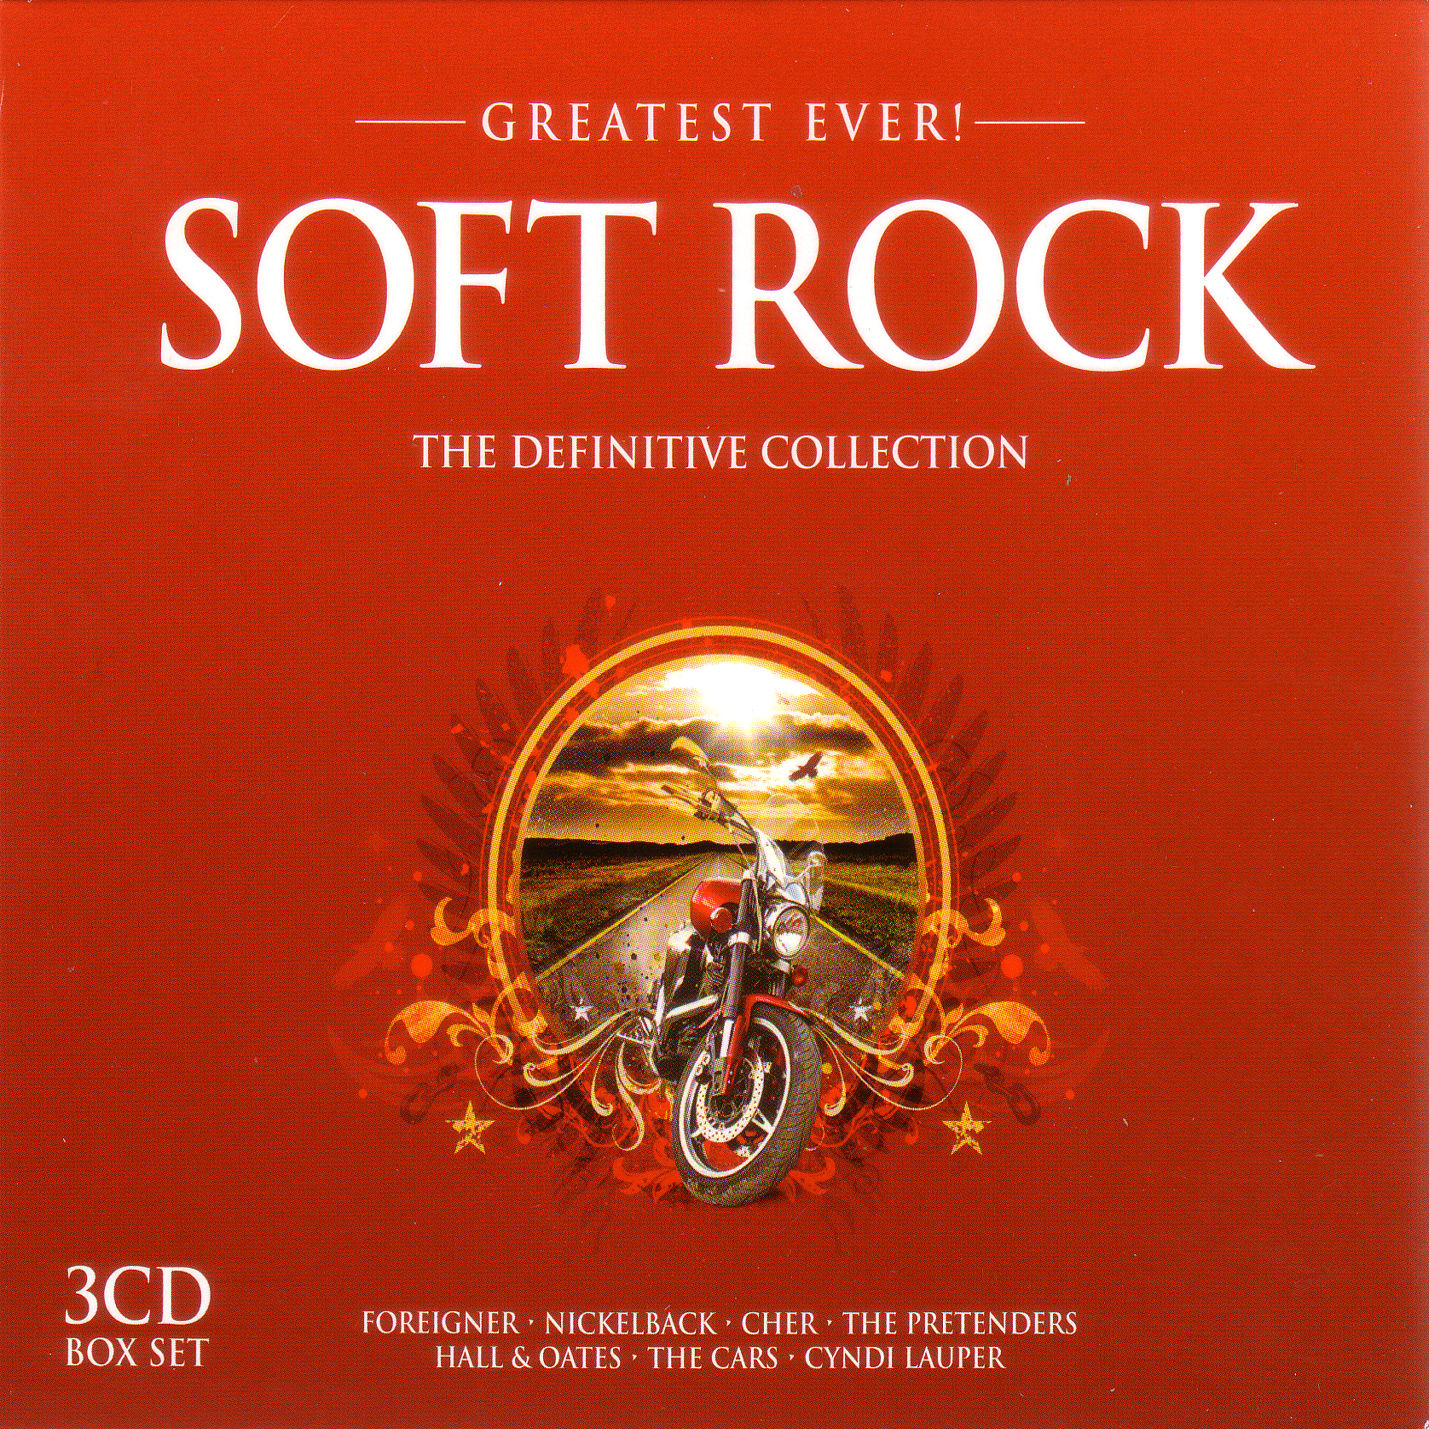 Download [Mp3]-[Hit On The Rock] The definitive collection VA – Greatest Ever! Soft Rock (2015) @320kbps 4shared By Pleng-mun.com